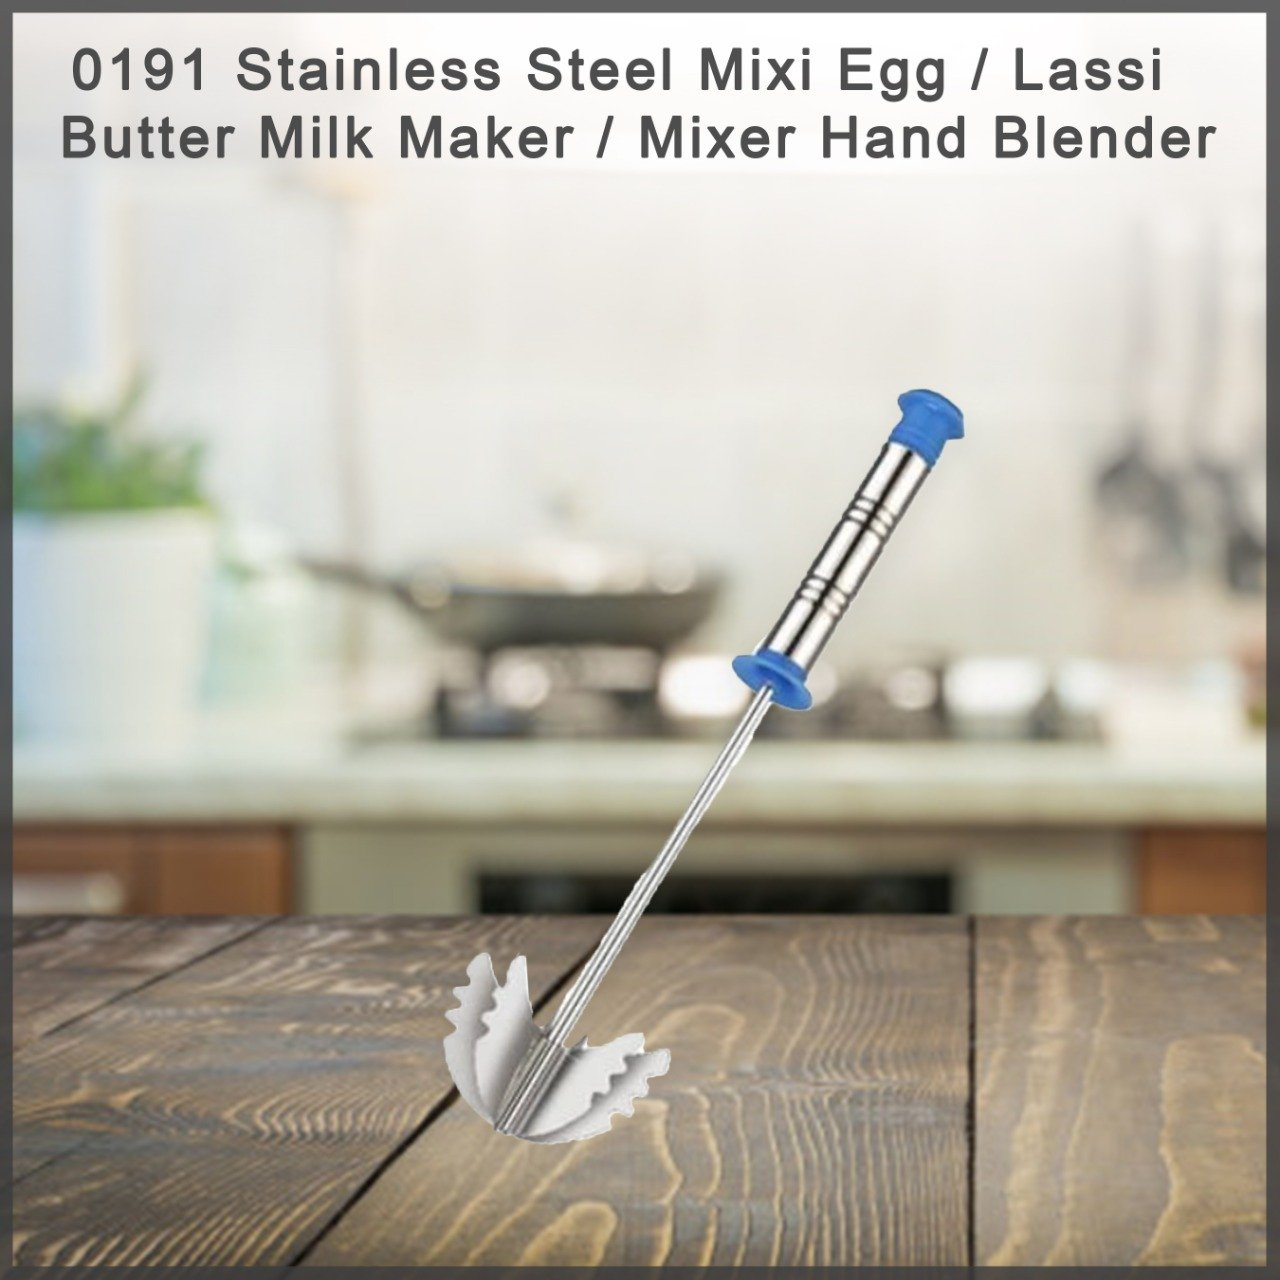 Stainless Steel Mixi Egg / Lassi / Butter Milk Maker / Mixer Hand Blender